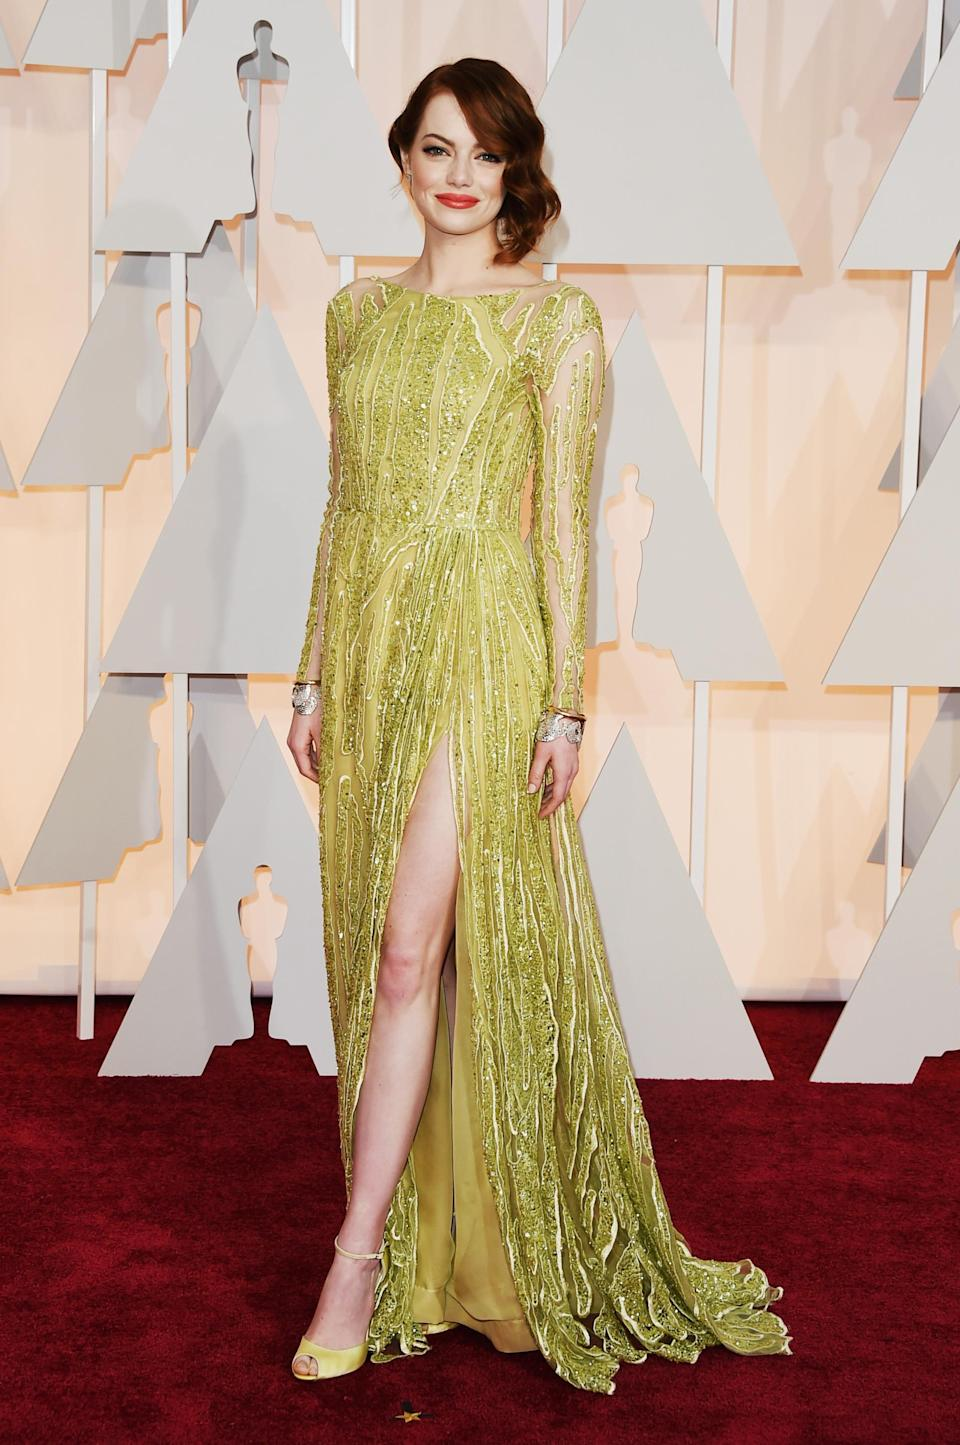 At the 87th Annual Academy Awards in 2015, then up-and-coming star Emma Stone wowed in a beaded green Elie Saab number, complete with thigh-high split.